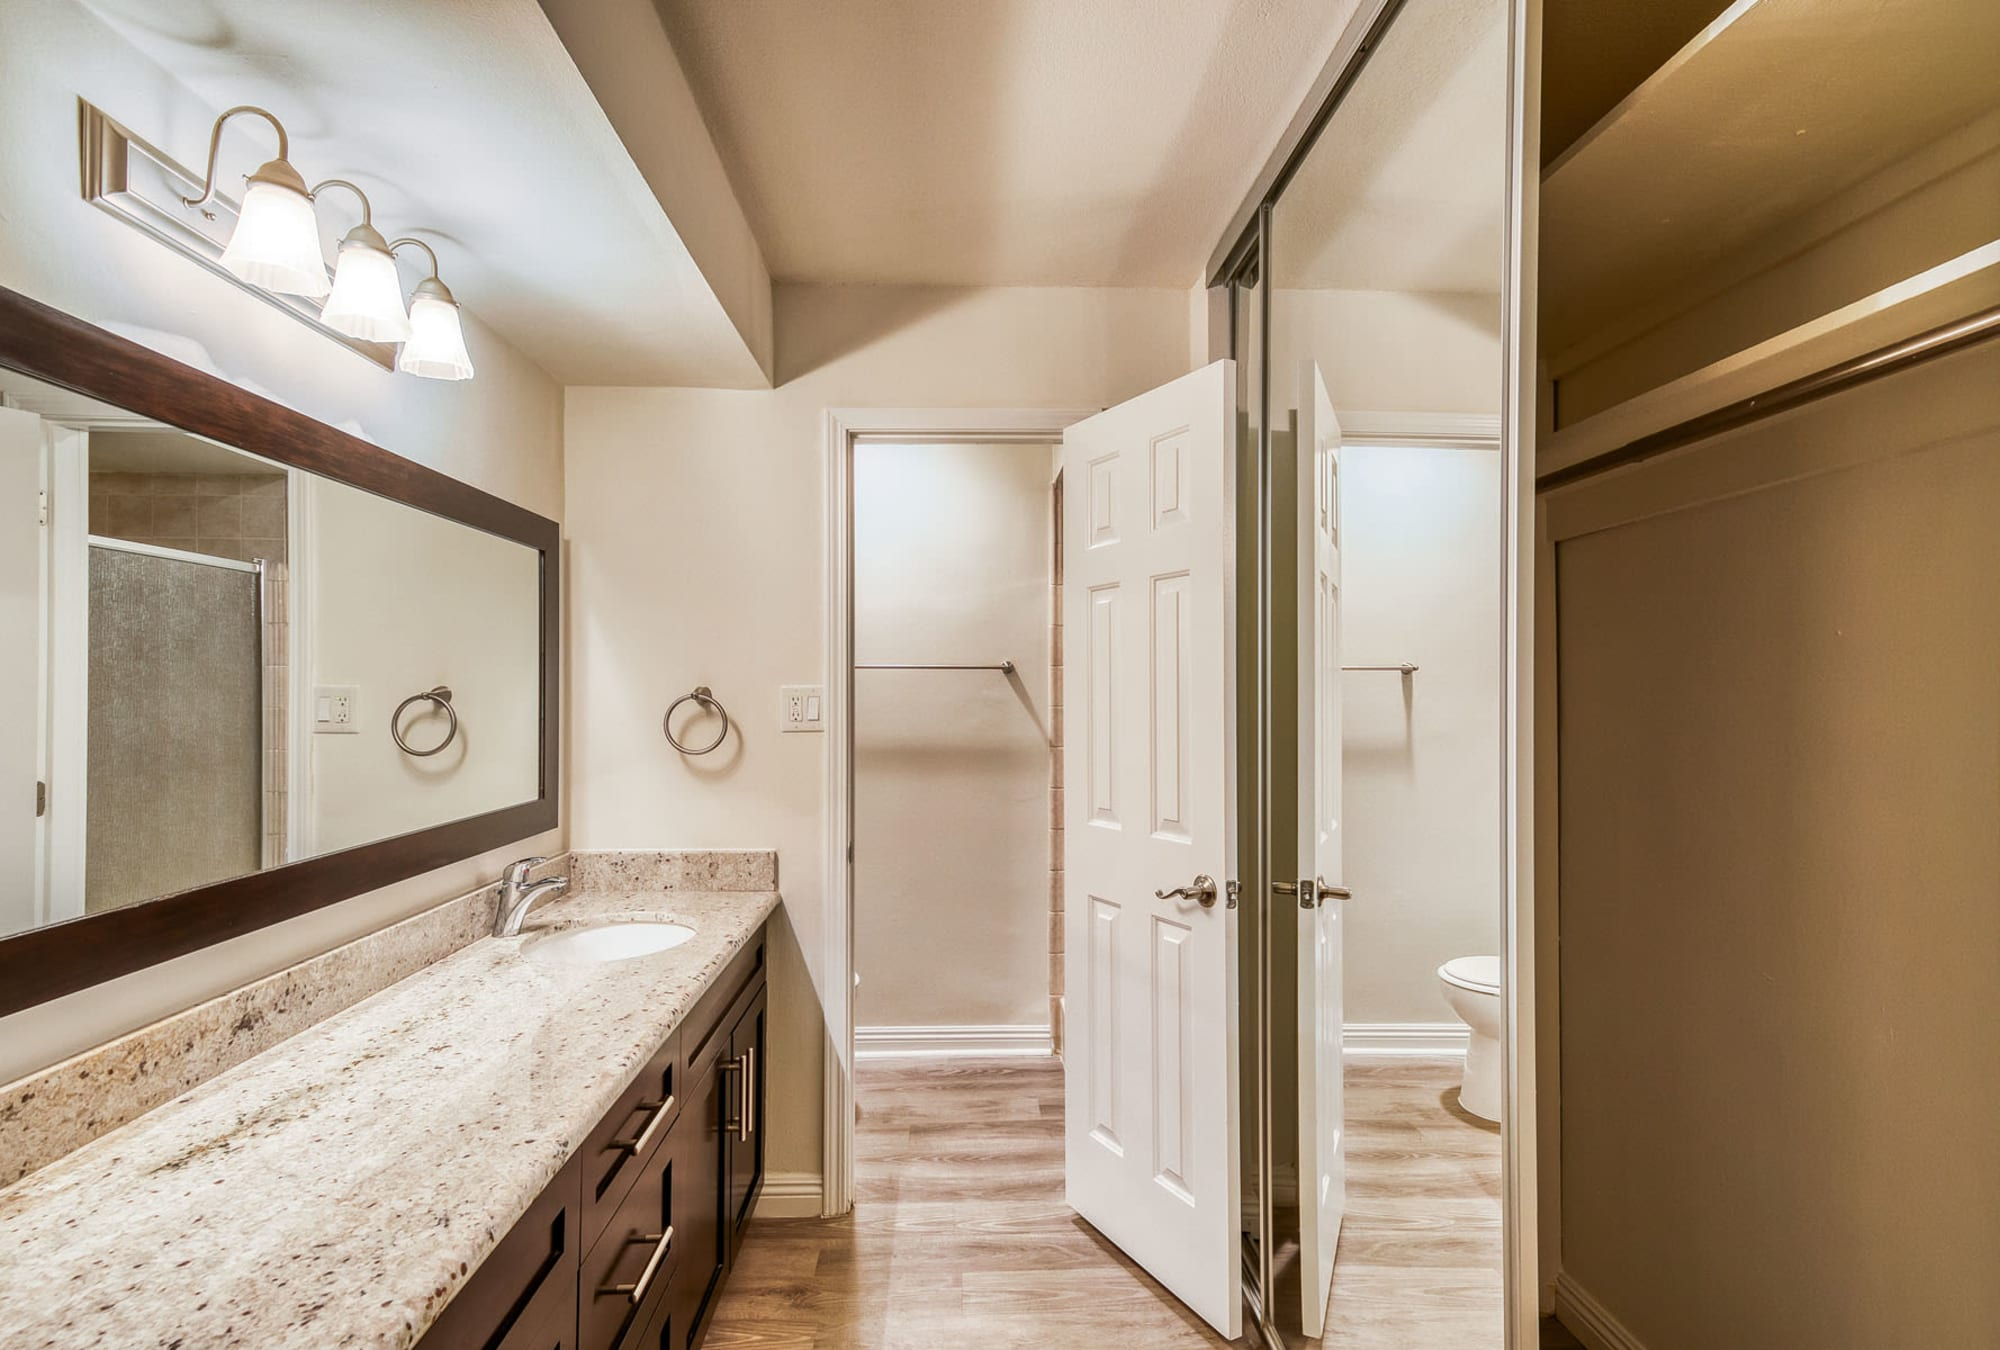 Spacious granite countertop and a closet for storage in a model home's primary bathroom at Mediterranean Village in West Hollywood, California